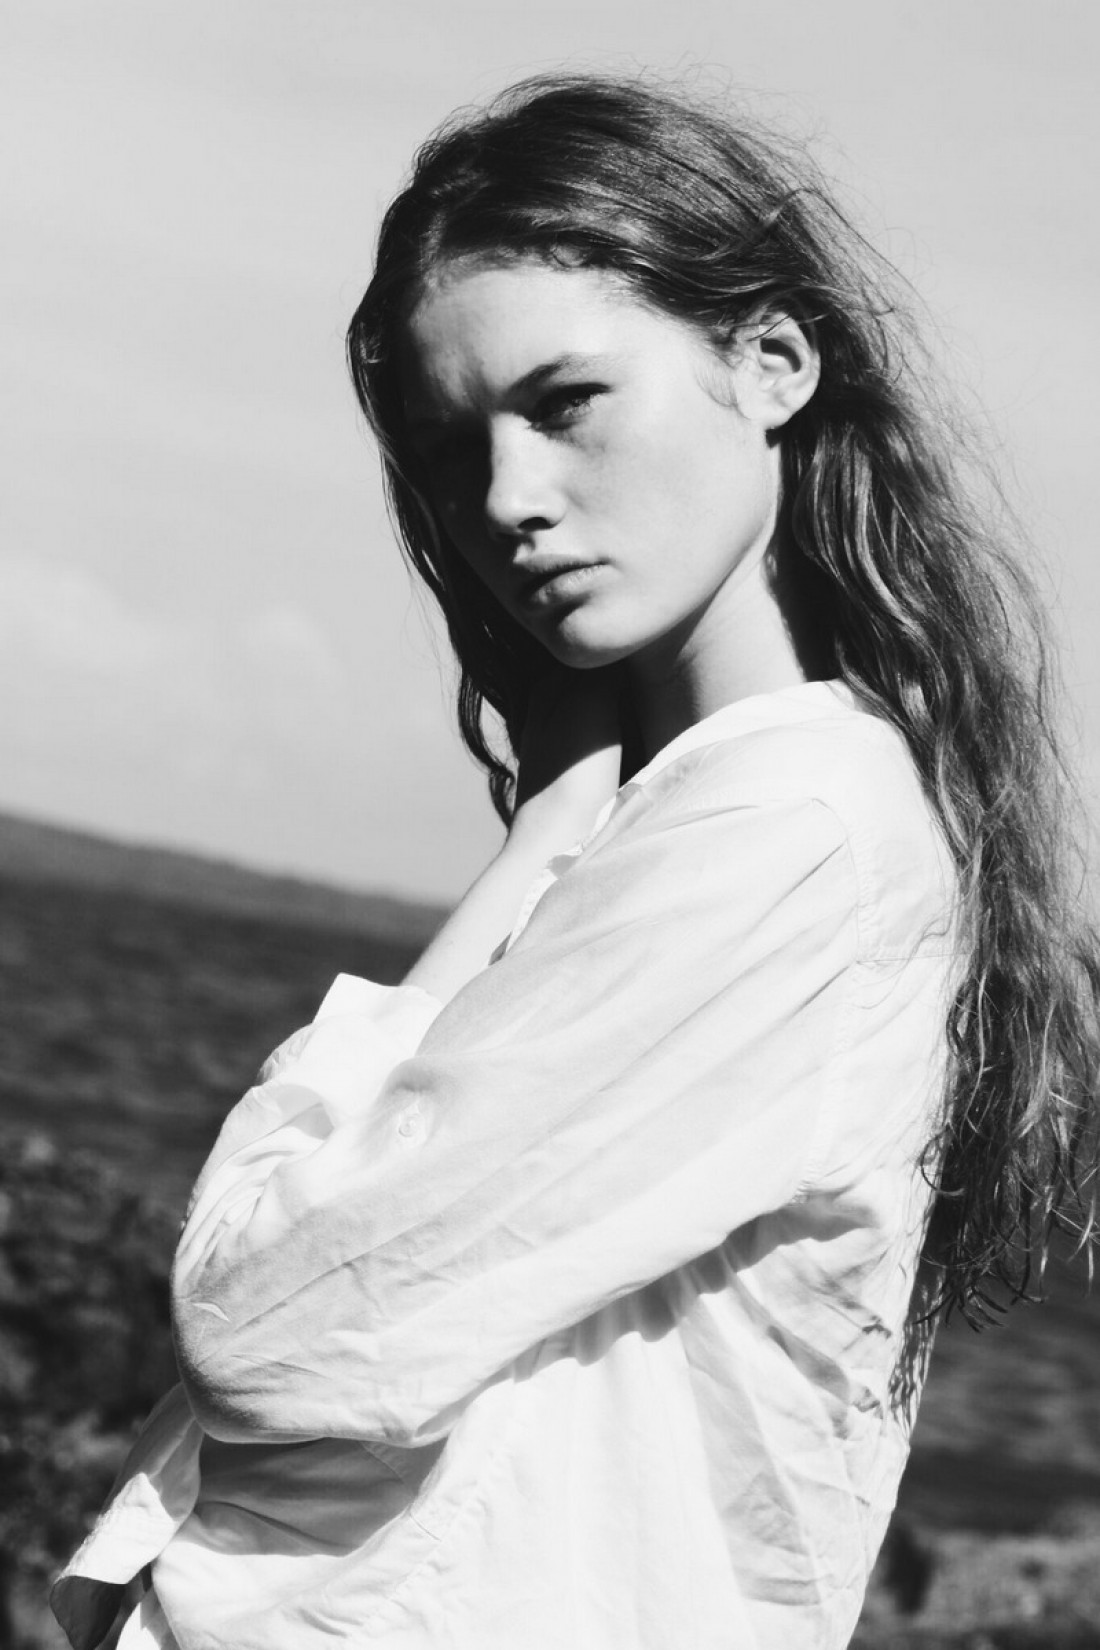 Milly photographed by Sophia Doak for Sonderingg.com